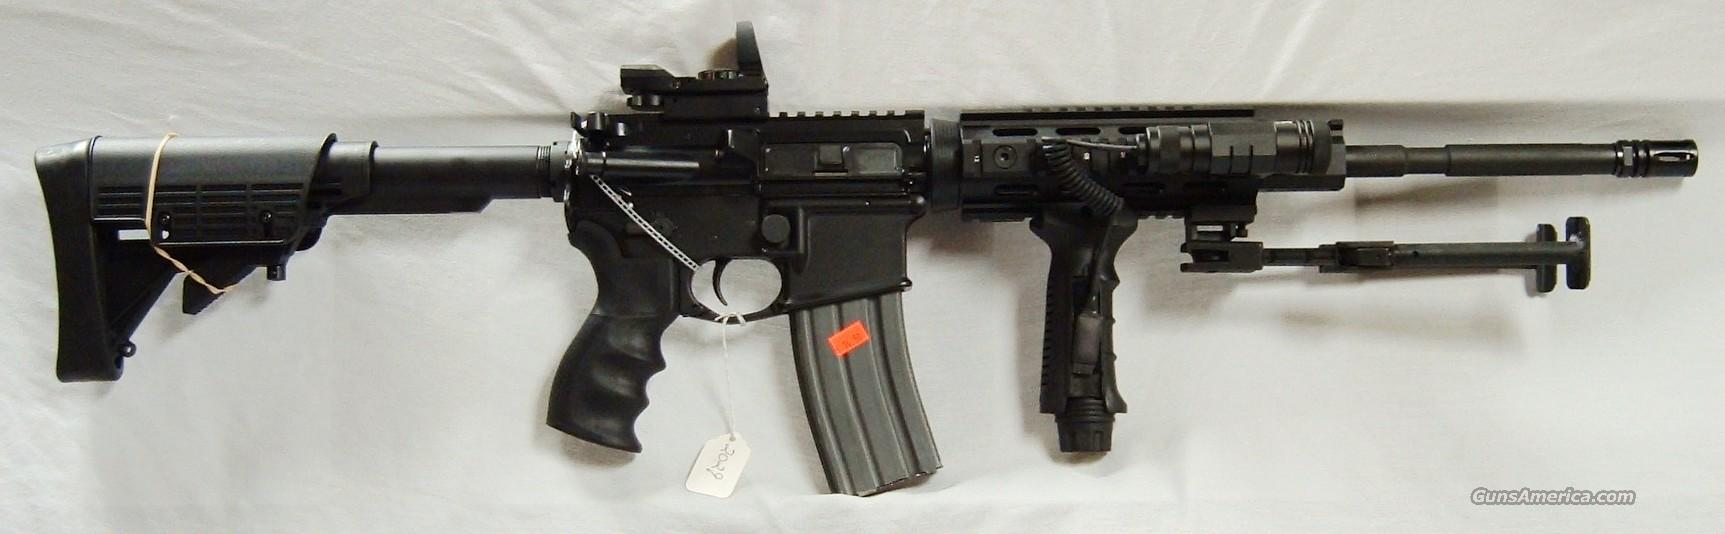 Loaded AR15  Guns > Rifles > AR-15 Rifles - Small Manufacturers > Complete Rifle